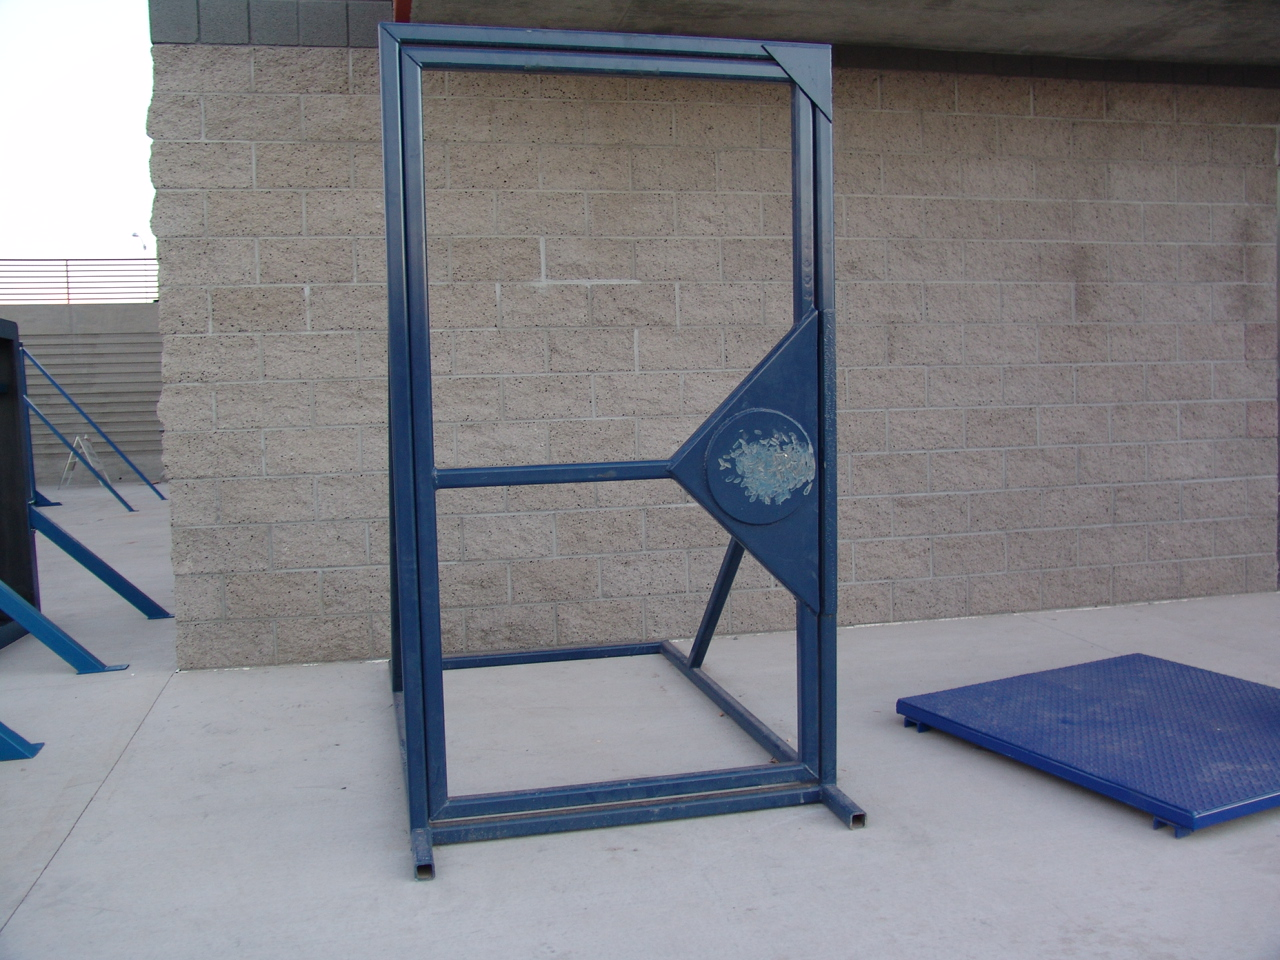 Smash Door Forcible Entry Prop